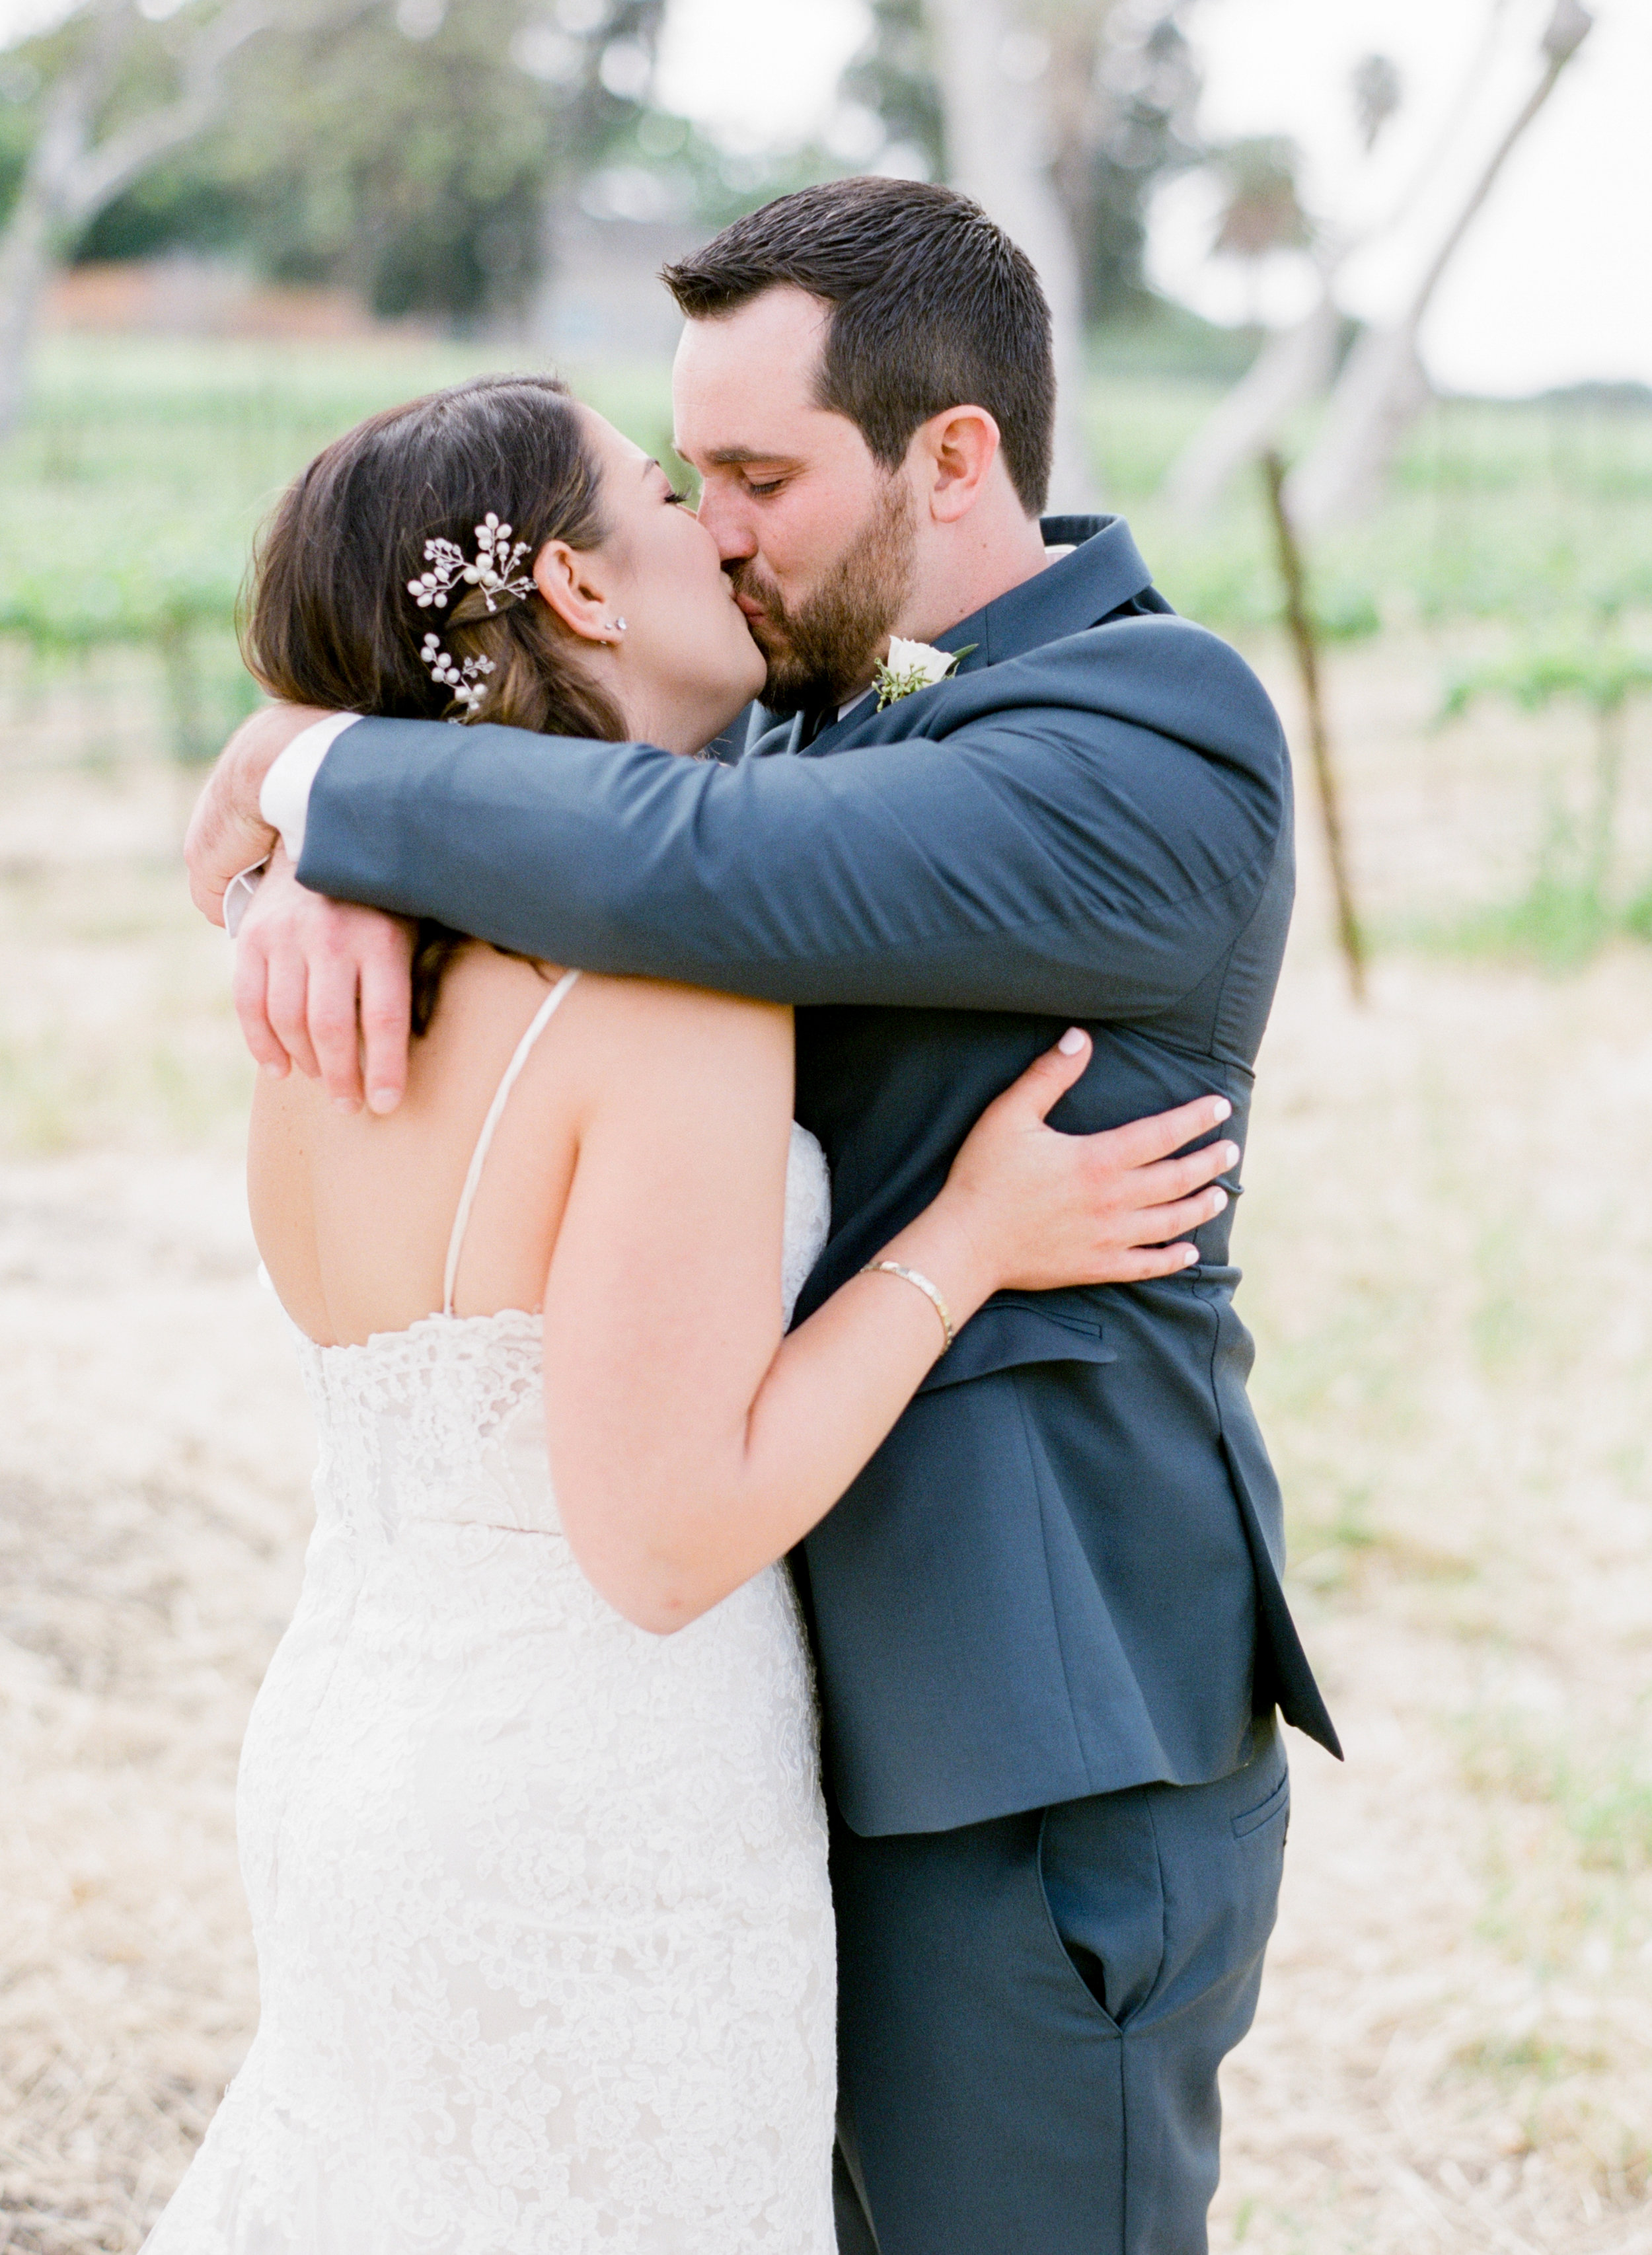 Muriettas-well-wedding-livemore-california-kristine-herman-photography-1-3.jpg